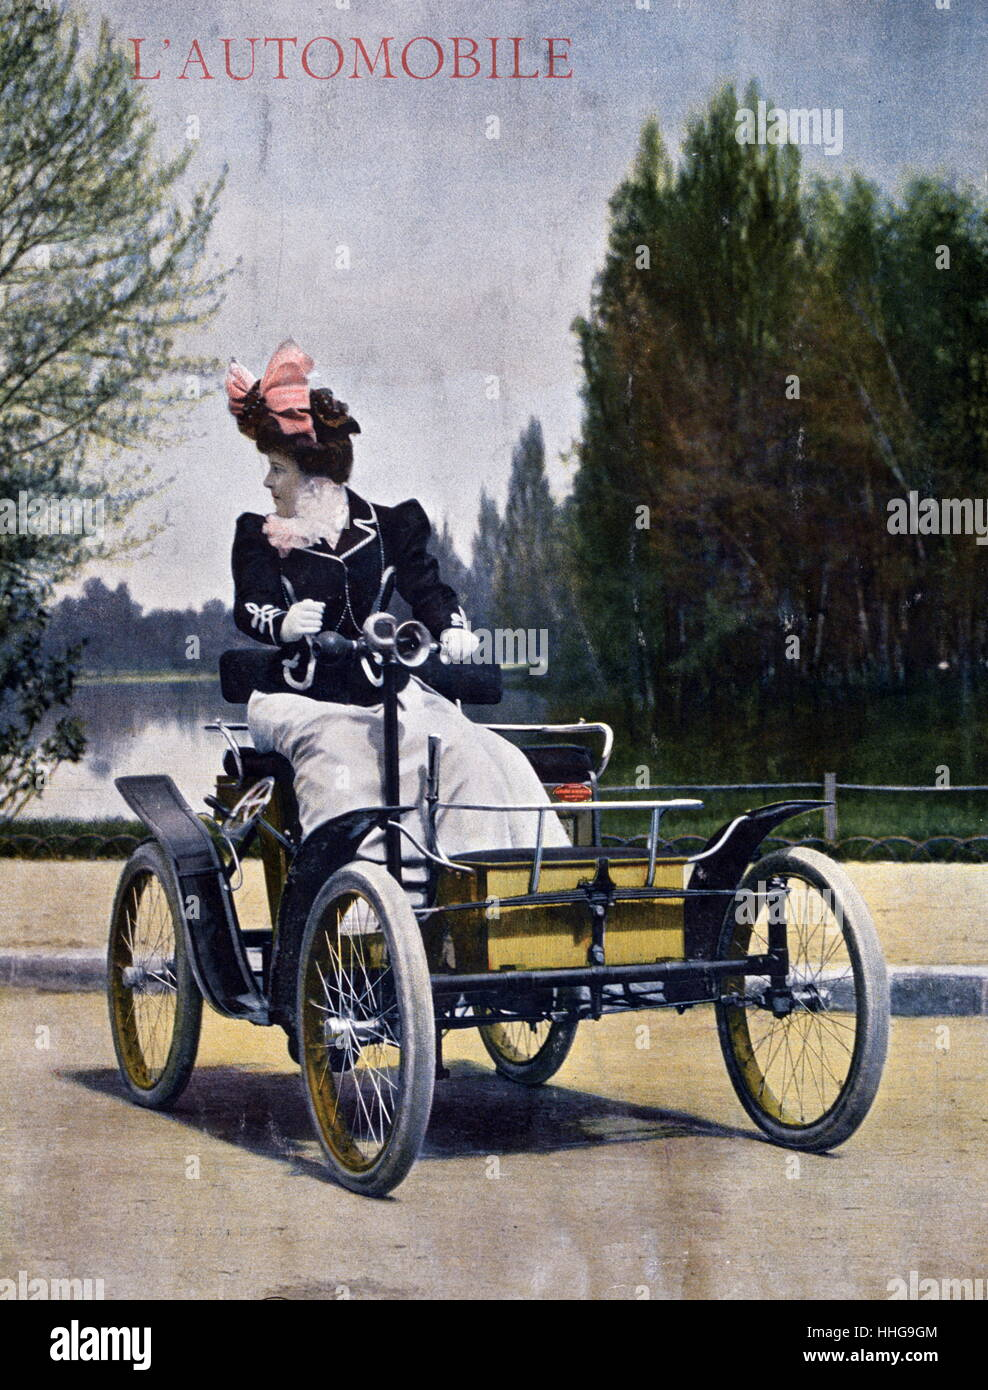 An 1899 Decauville Voiturelle motorcar driven by a woman - Stock Image